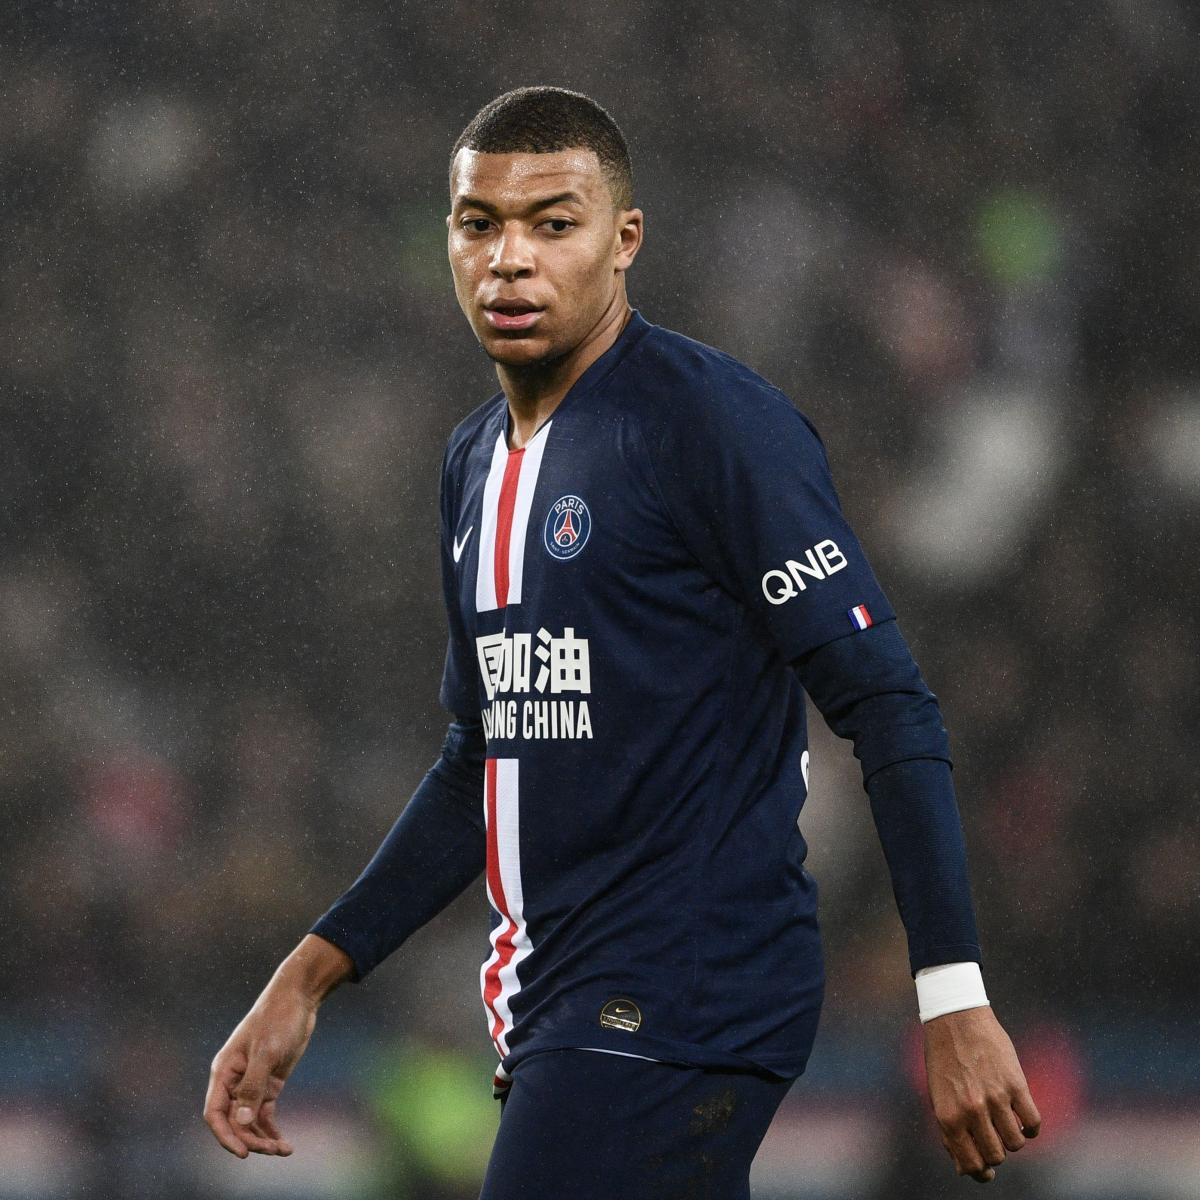 PSG's Kylian Mbappe Posts 'Afraid to Win?' on IG in Response to Fans' Banner